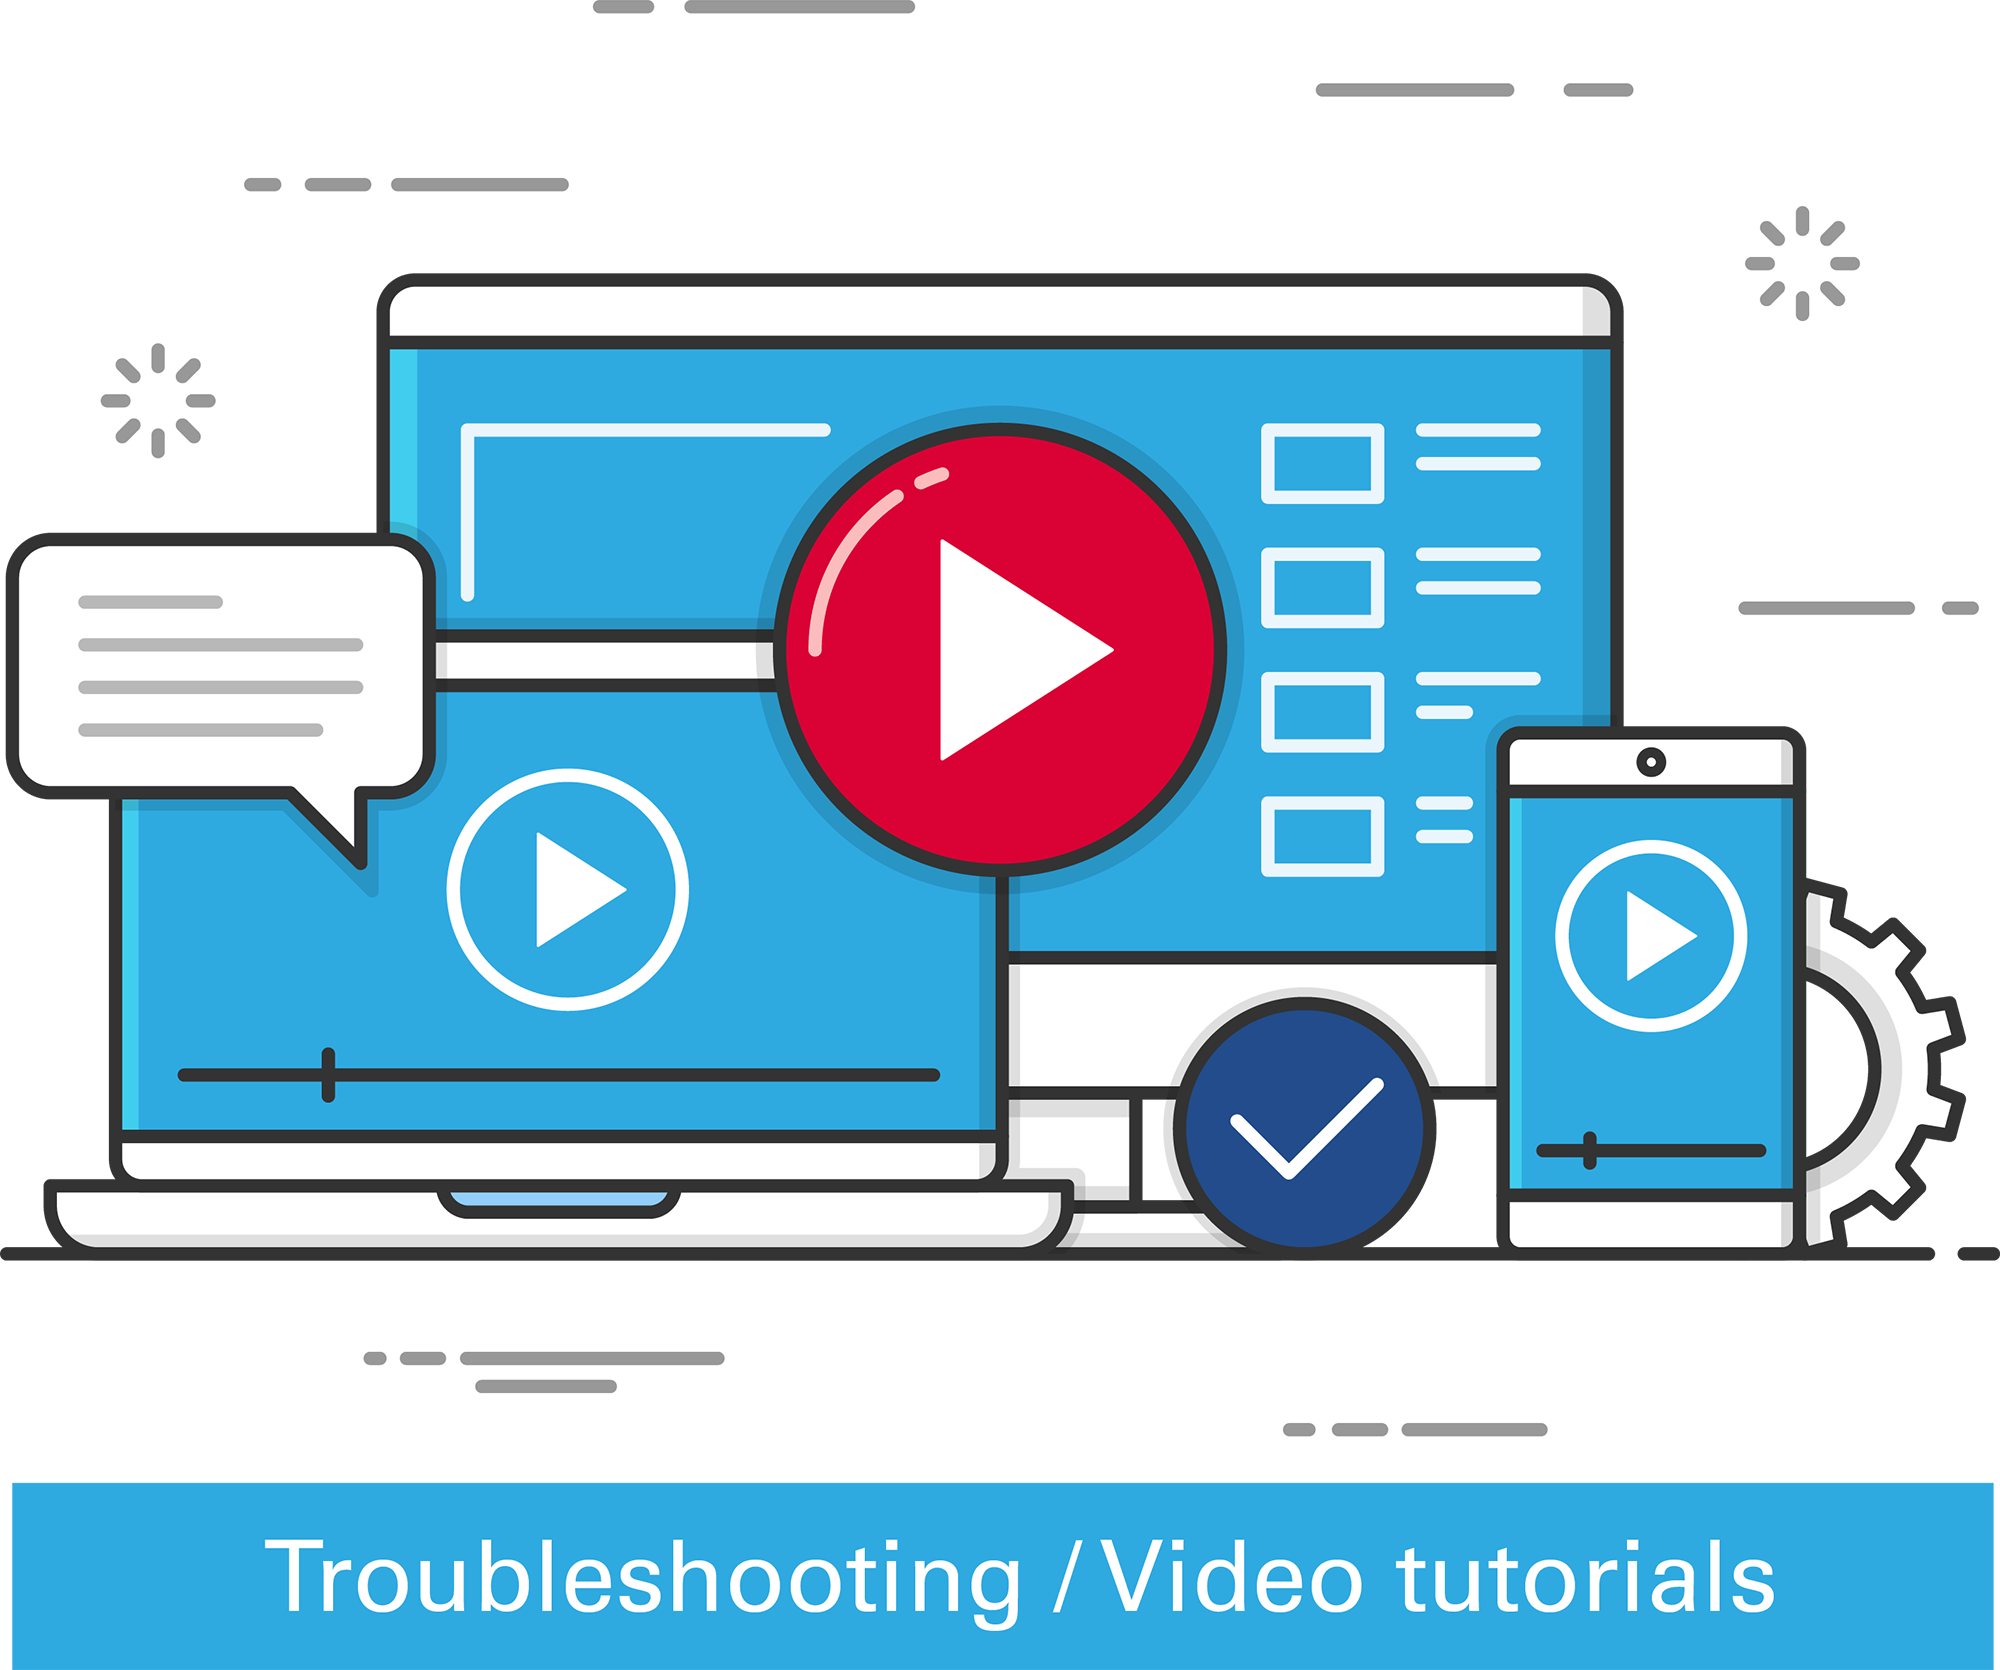 NUBE SS30 Video tutorials and troubleshooting